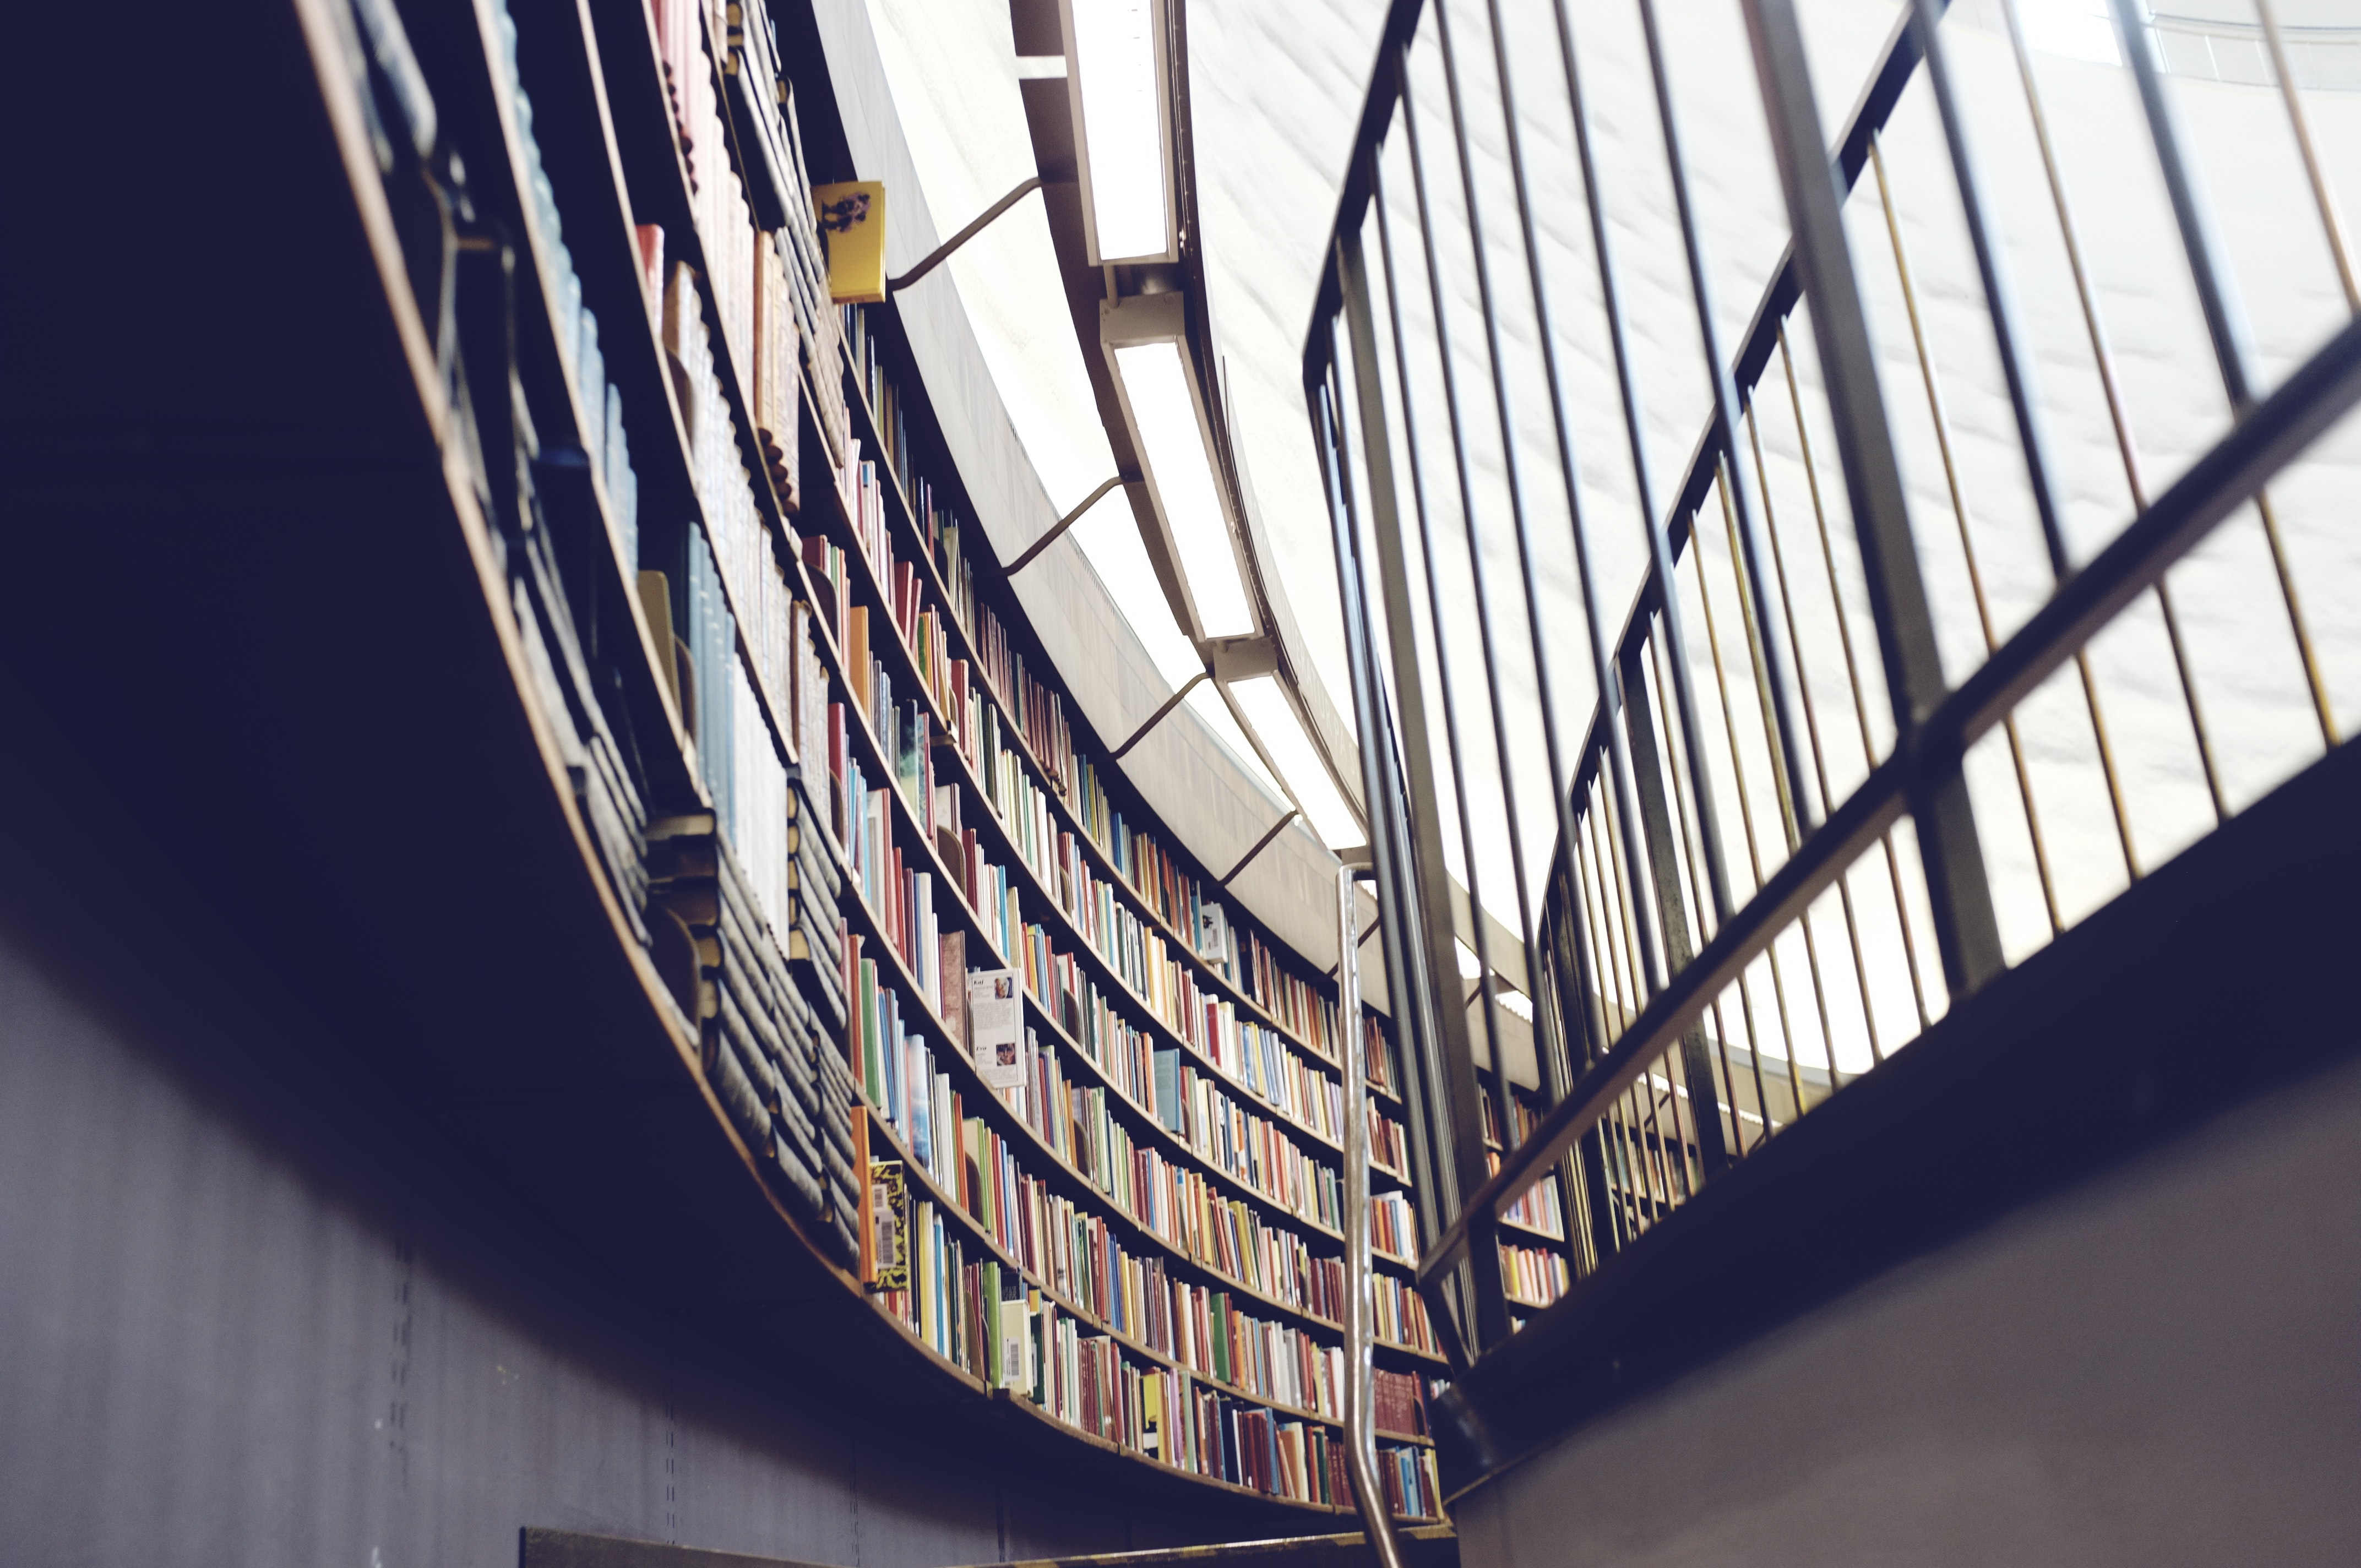 Books on shelves mounted along a curved library wall